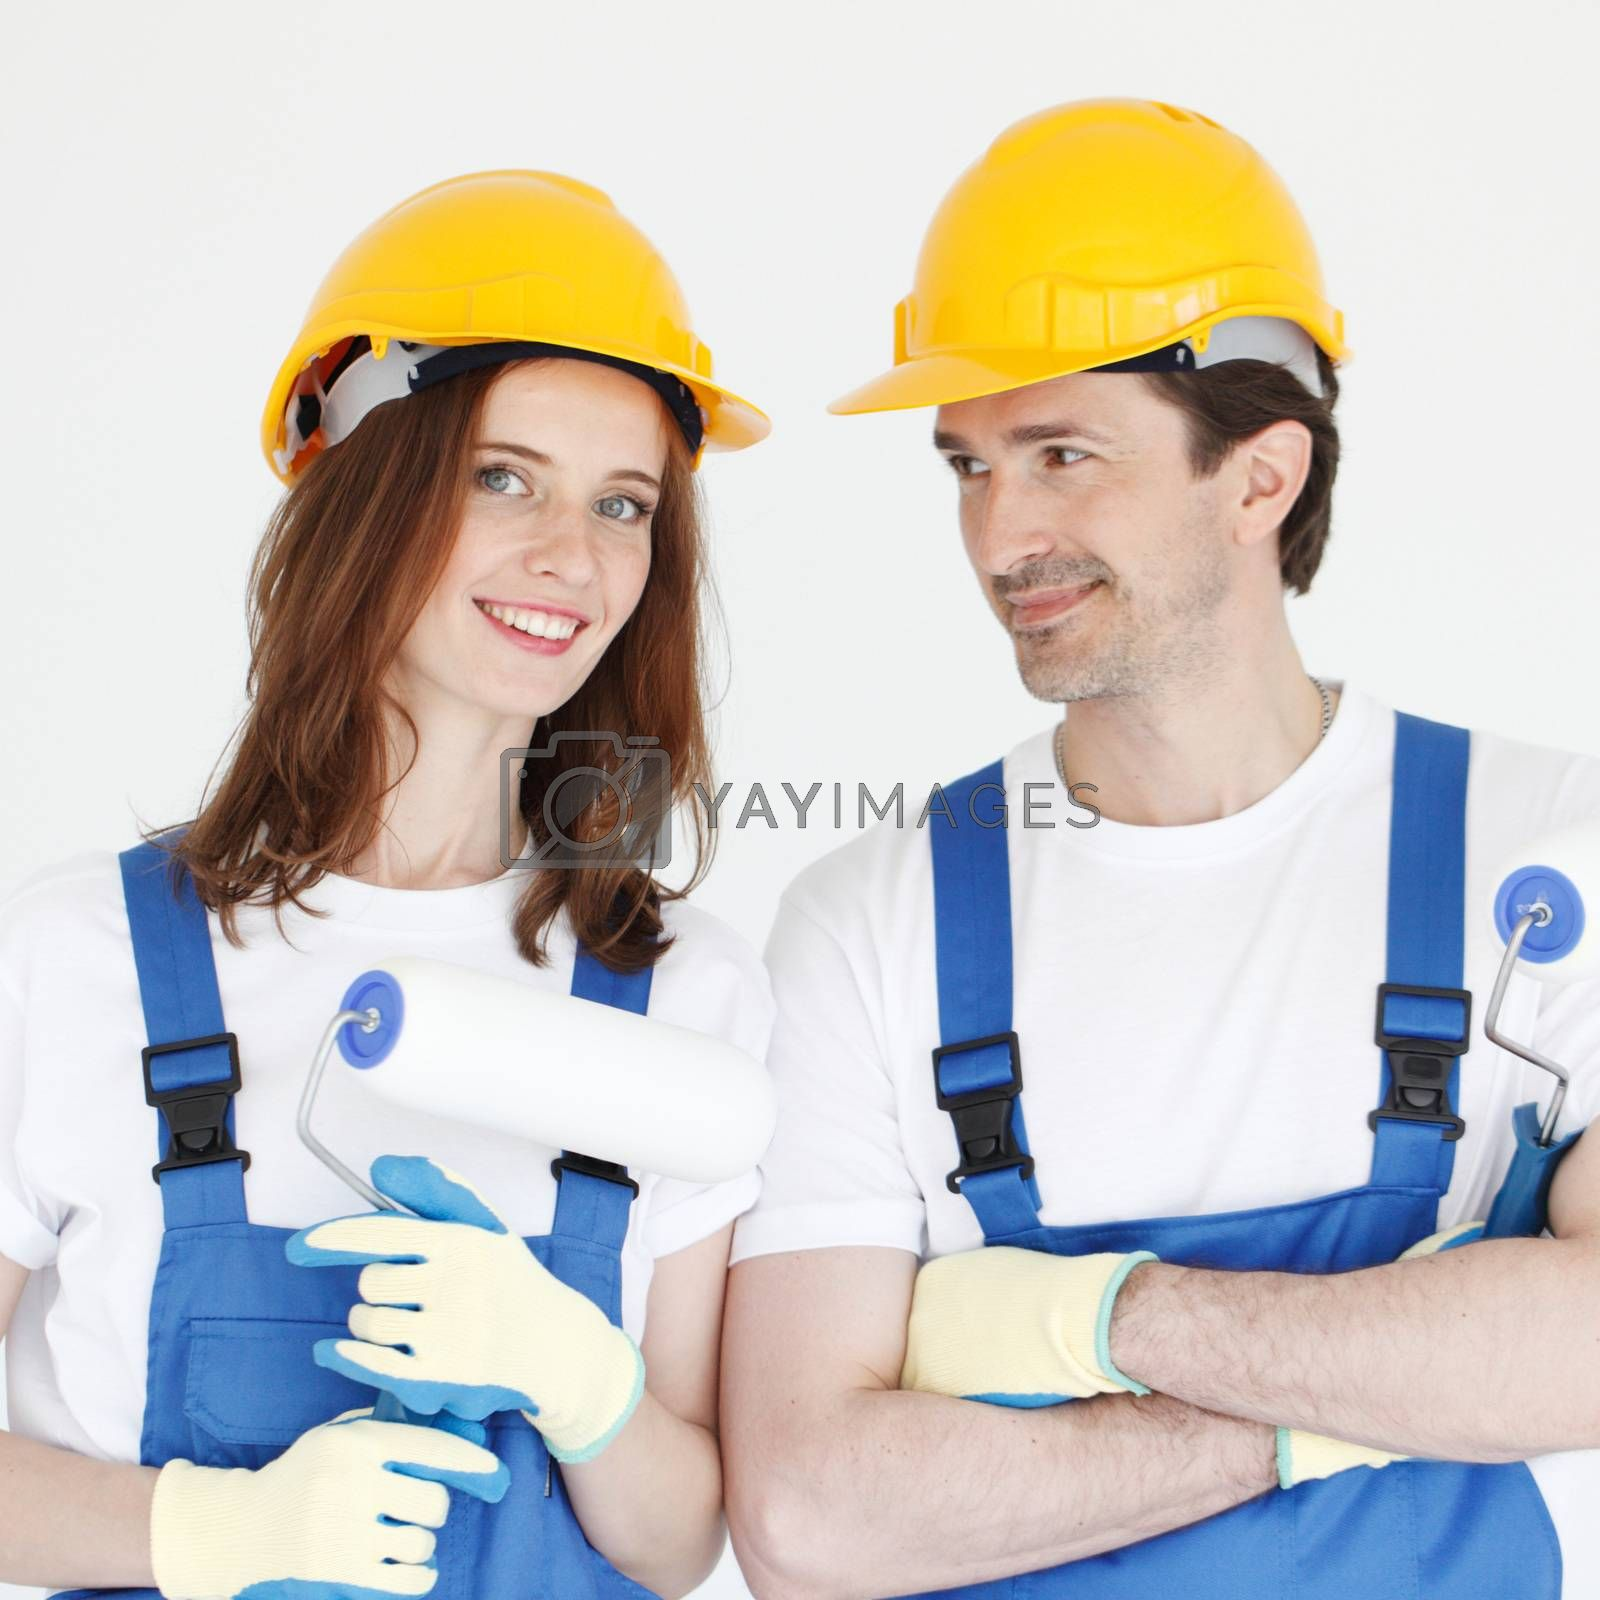 Two young workers in uniform of coverall and hardhat with paint rollers